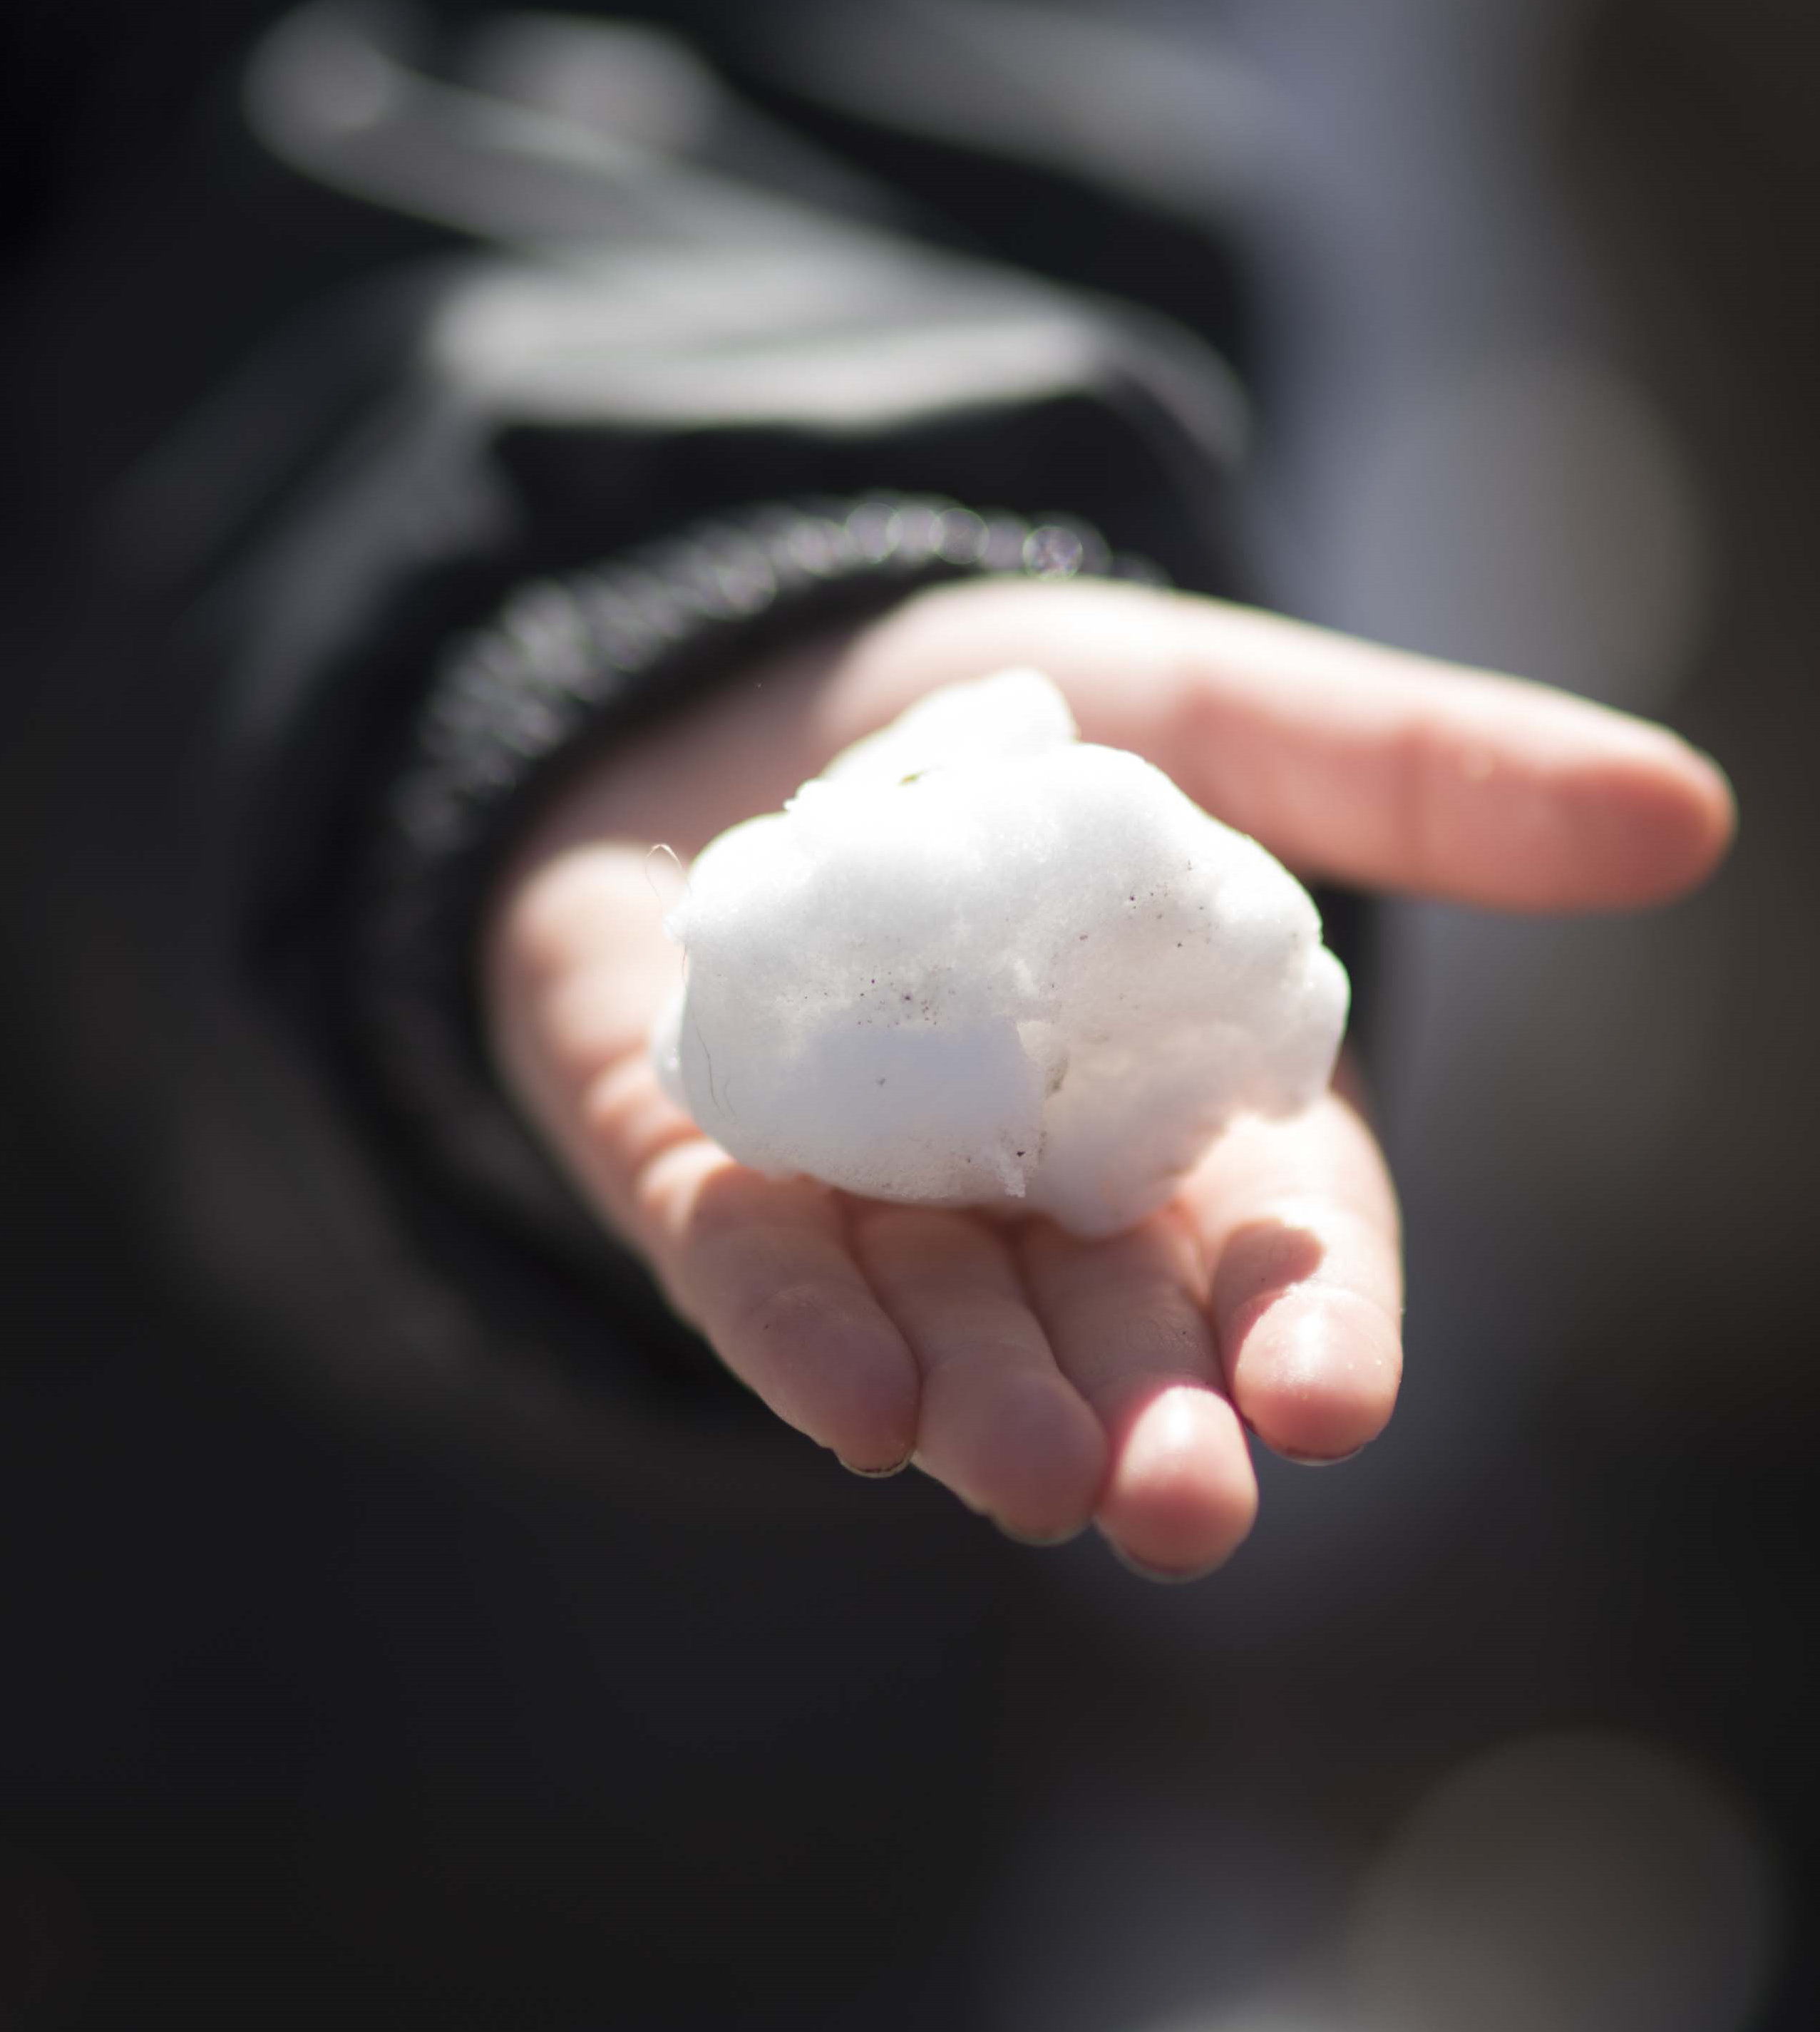 A snowball in the hand of a child - Photo by Rikke Rosengren